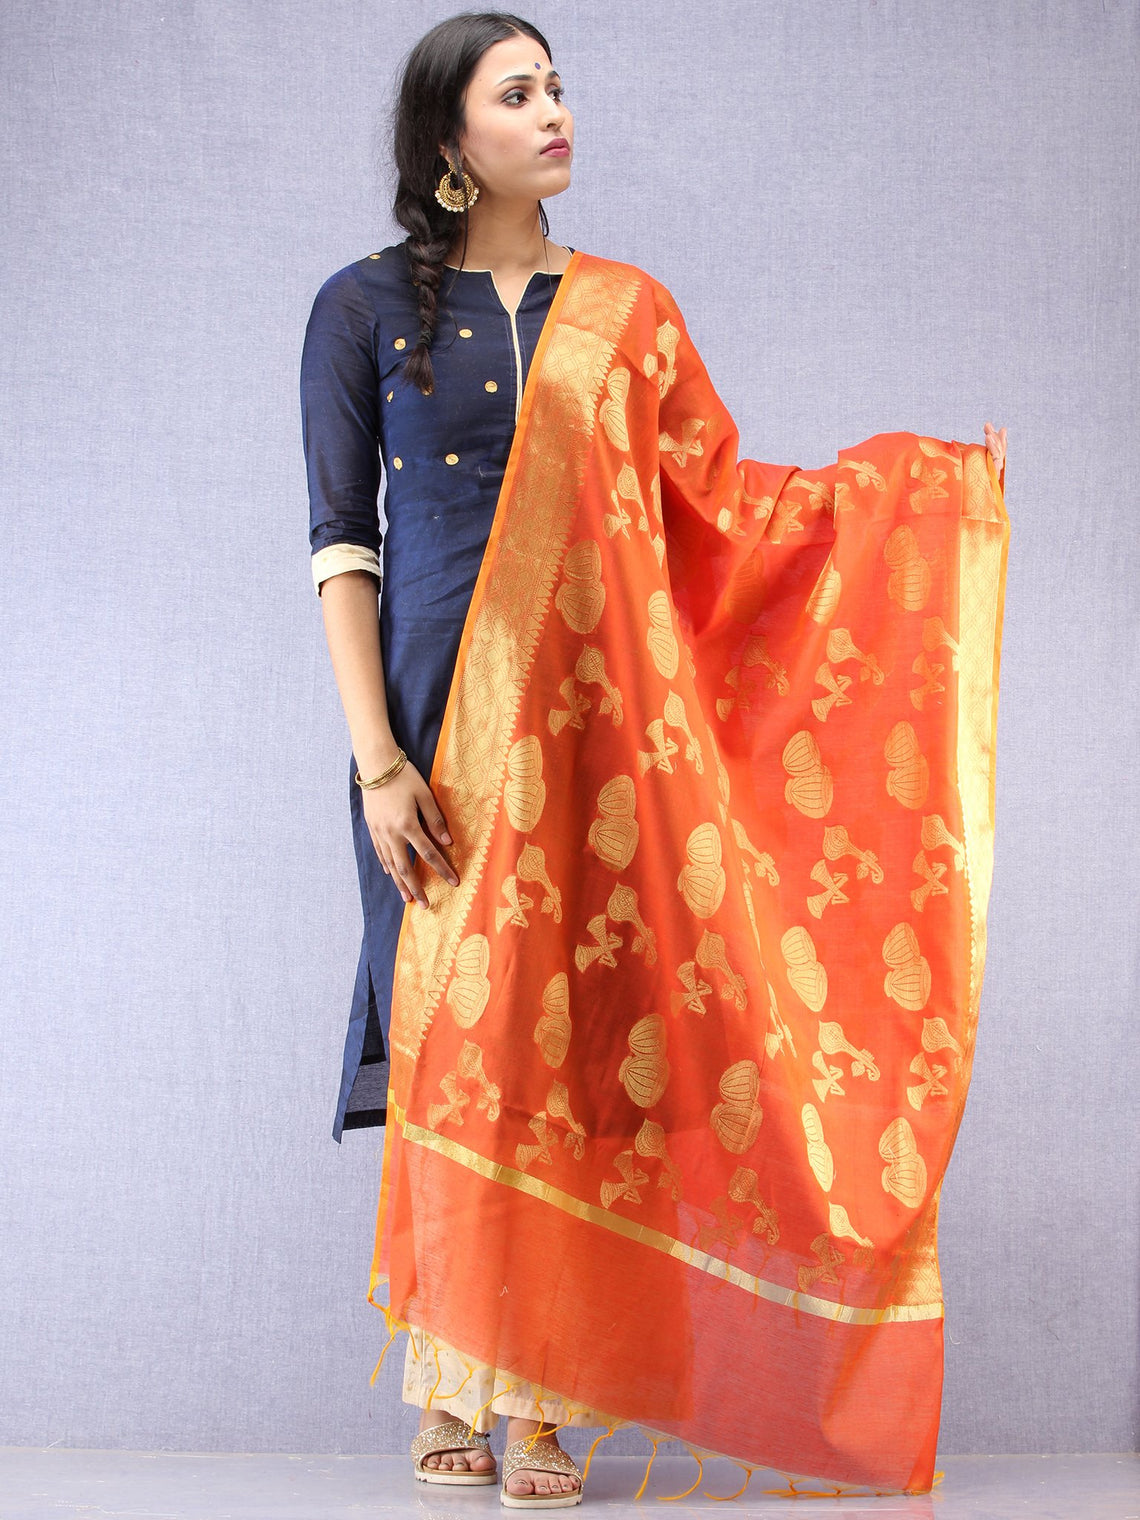 Banarasi Chanderi Dupatta With Zari Work - Orange & Gold - D04170826